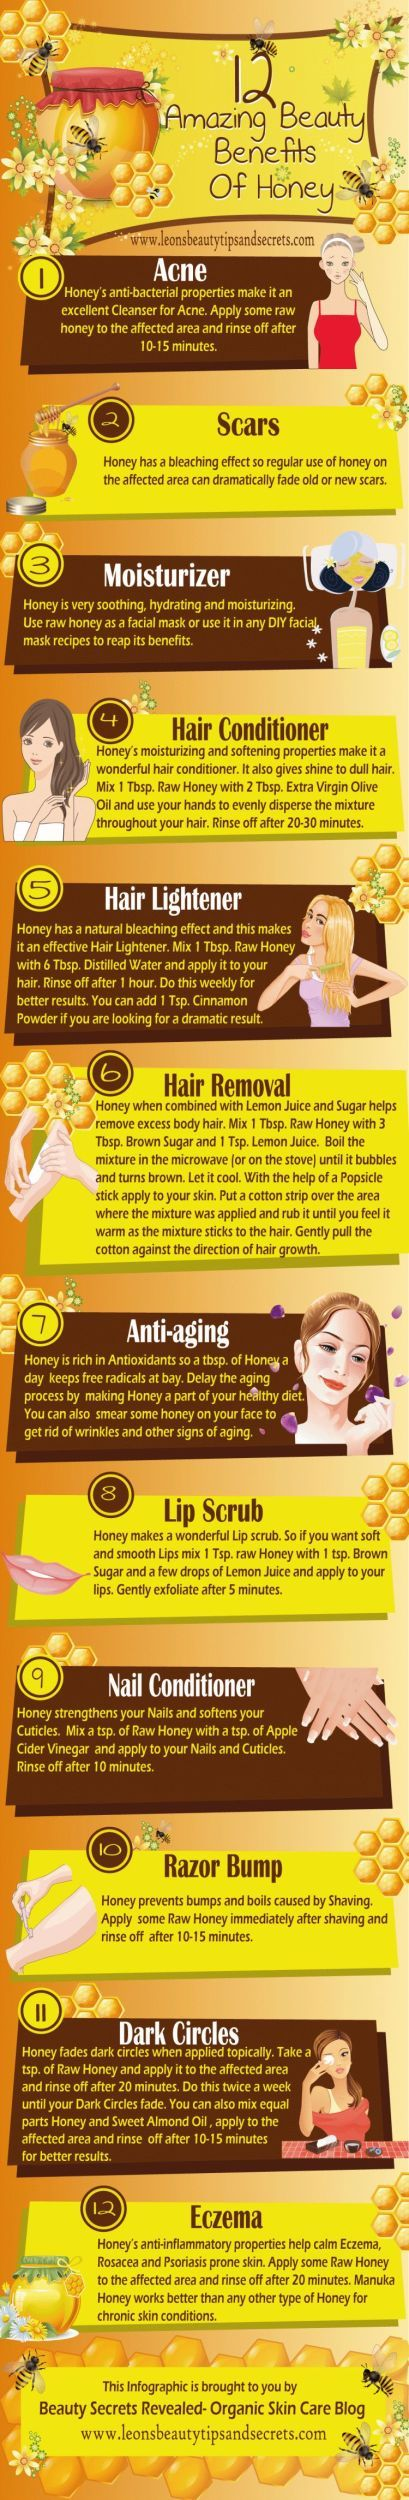 Sweet! 12 Amazing Beauty Benefits Of Honey Infographic - Acne, scars, moisturizer, hair conditioner & lightener, anti-aging, lip & nail conditioner, dark circles, eczema.